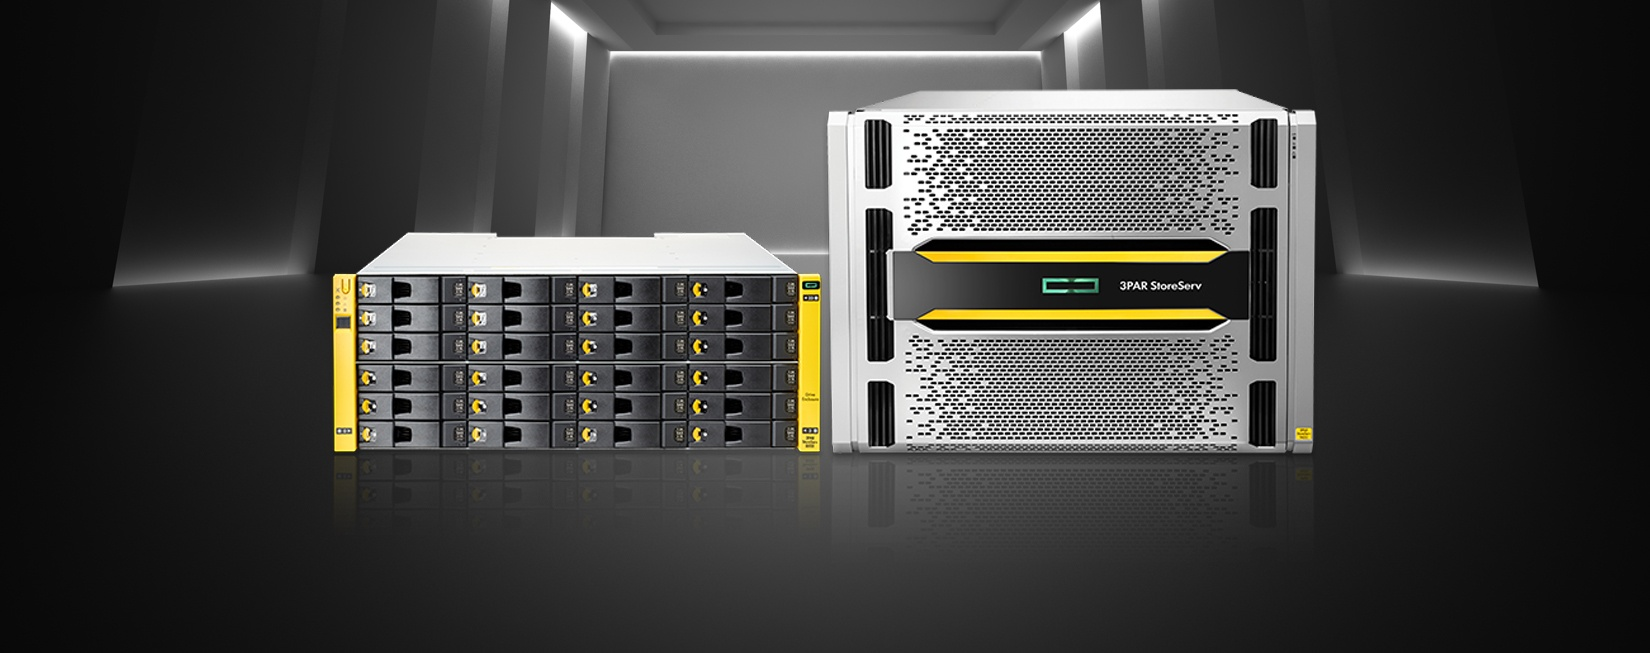 what is hpe 3par storeserv storage